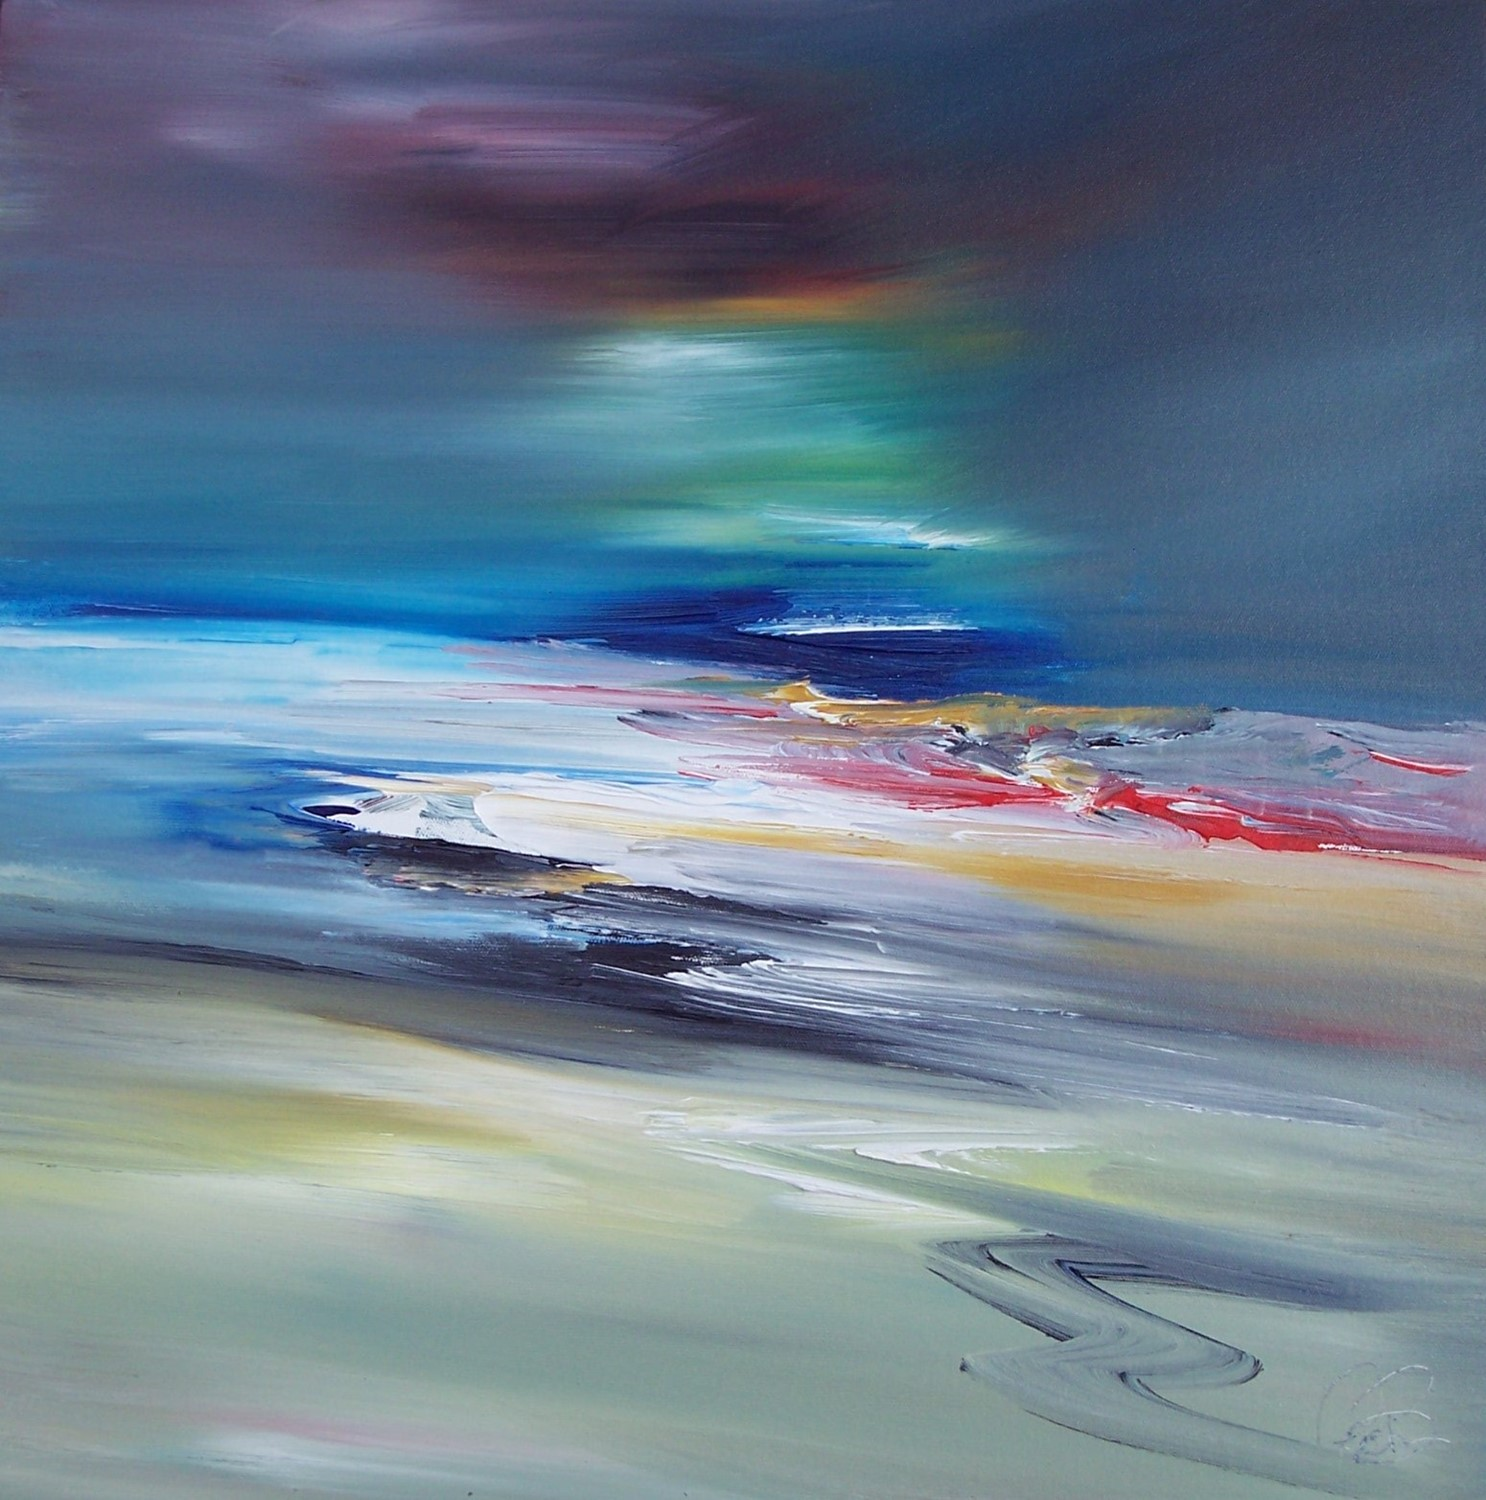 'Ebb and Flow' by artist Rosanne Barr